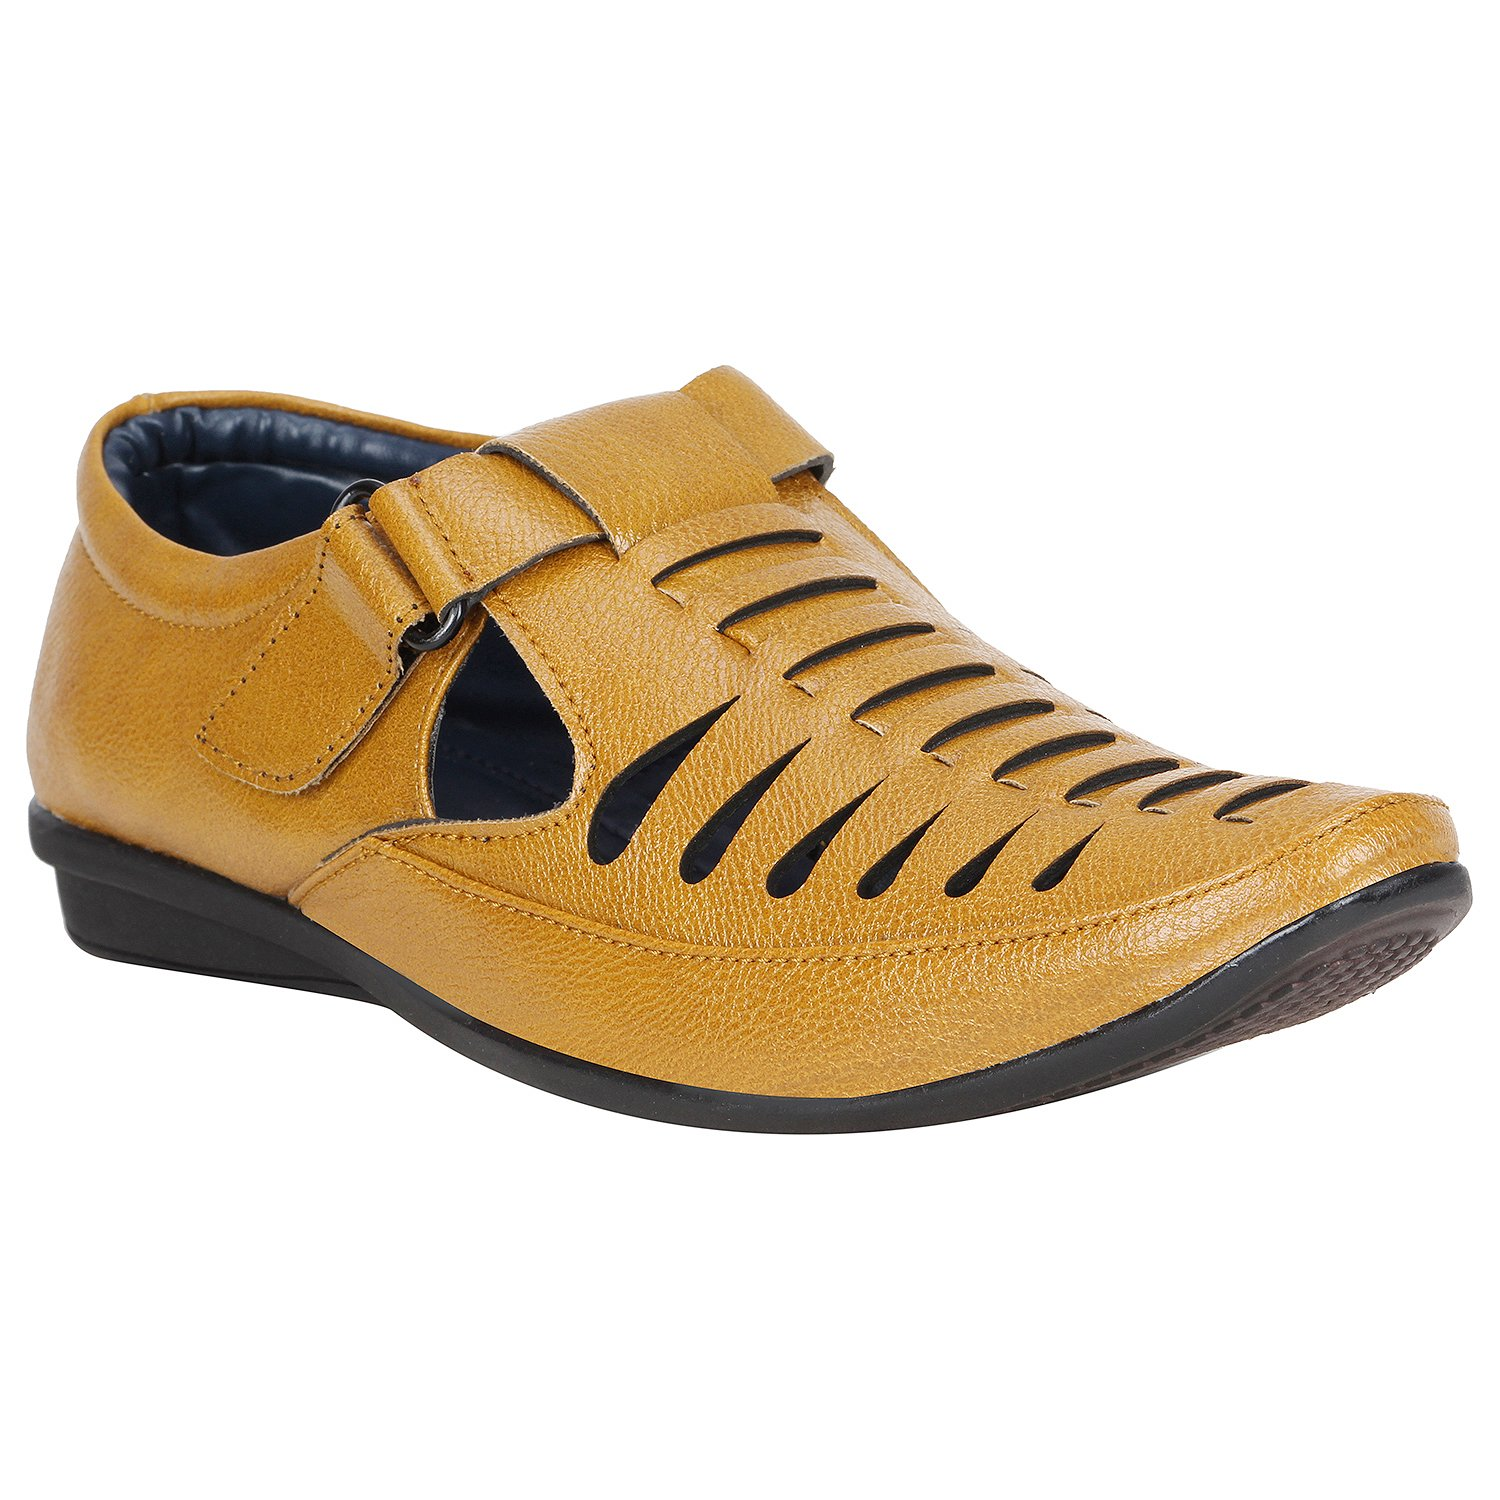 Formal Sandals for men under 1000 India